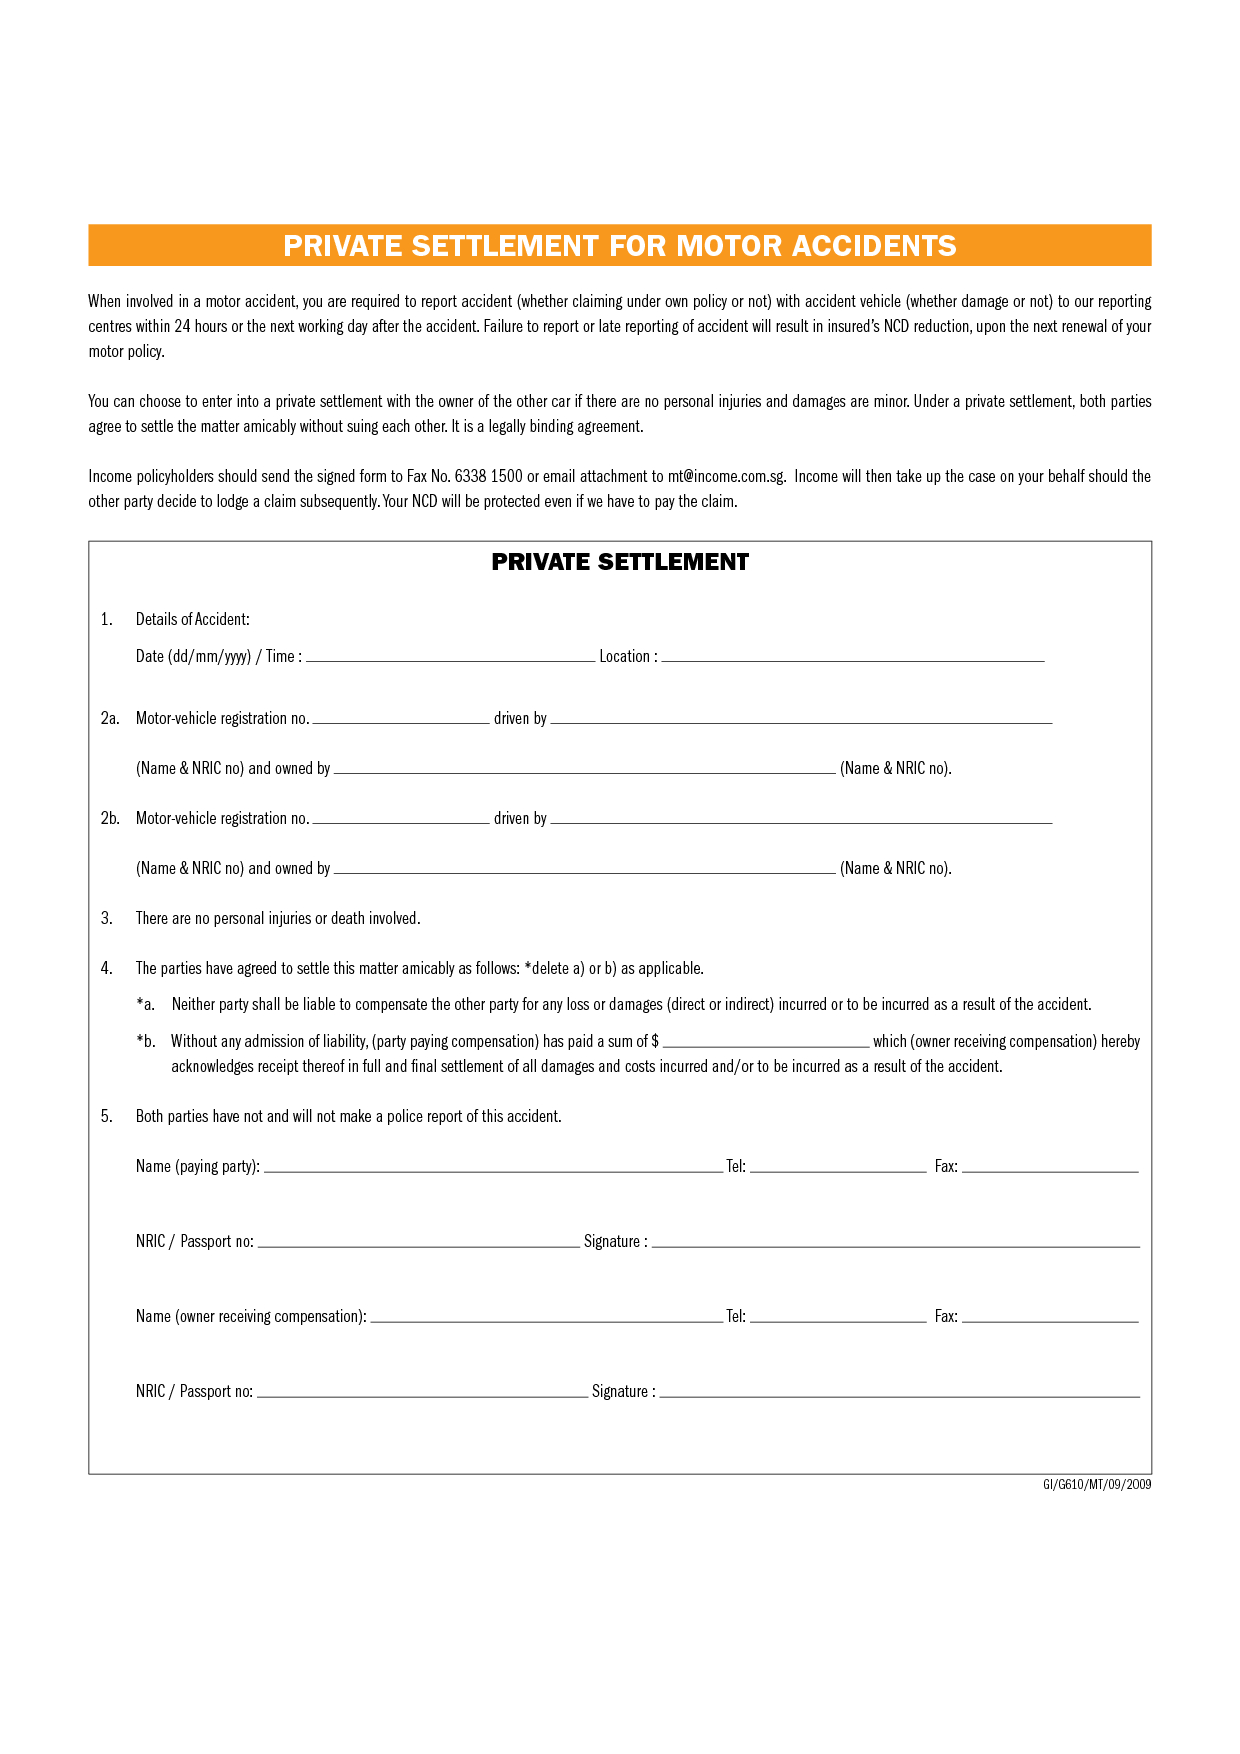 Full and Final Settlement Letter Template Car Accident - 10 Settlement Agreement Settlement form Auto Content